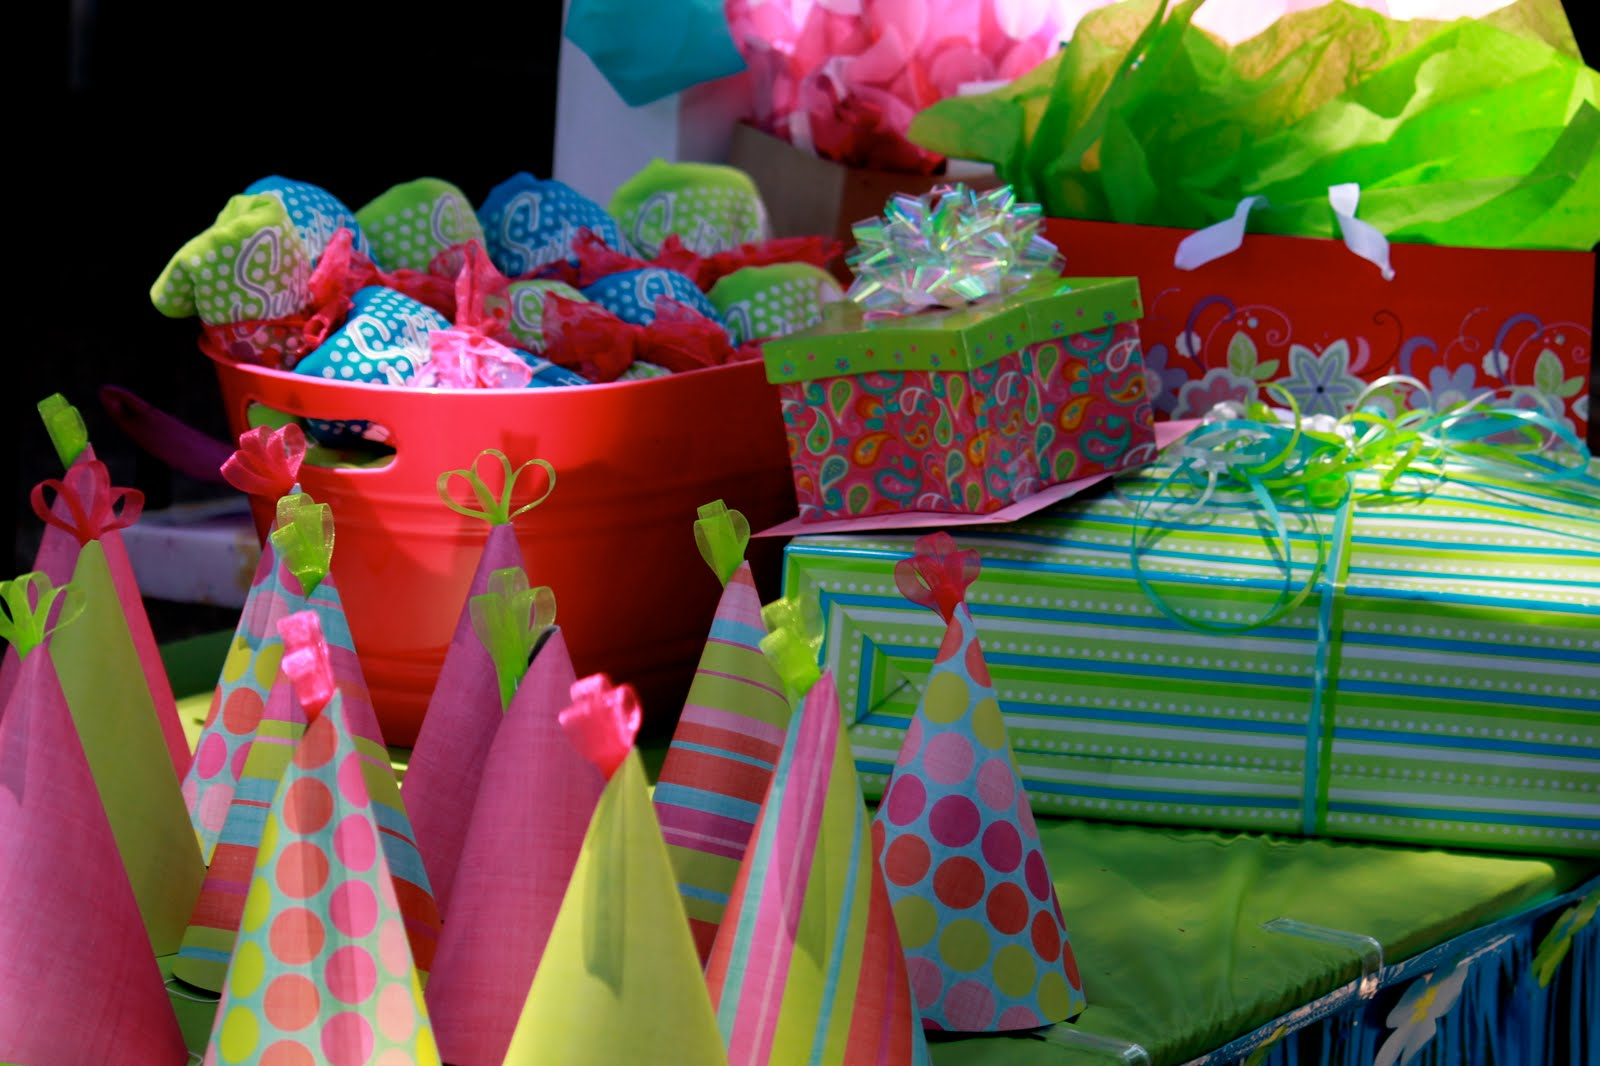 Birthday Party Ideas for Teens It's easy when the kids are young to figure out fun party themes, but as a tween or teen girl- ah it's so much harder! They still want parties but don't like the little kid stuff.